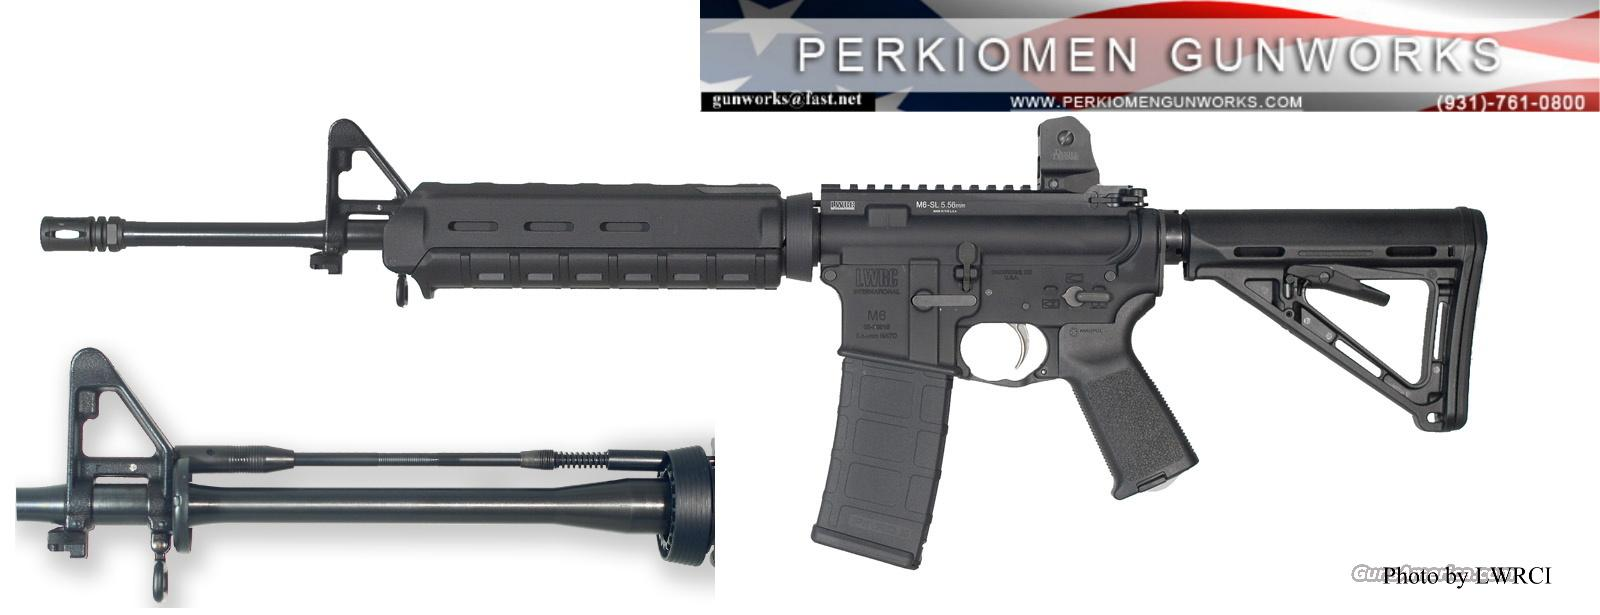 LWRCI M6-SL 5.56 Lightweight - New for 2011  Guns > Rifles > AR-15 Rifles - Small Manufacturers > Complete Rifle